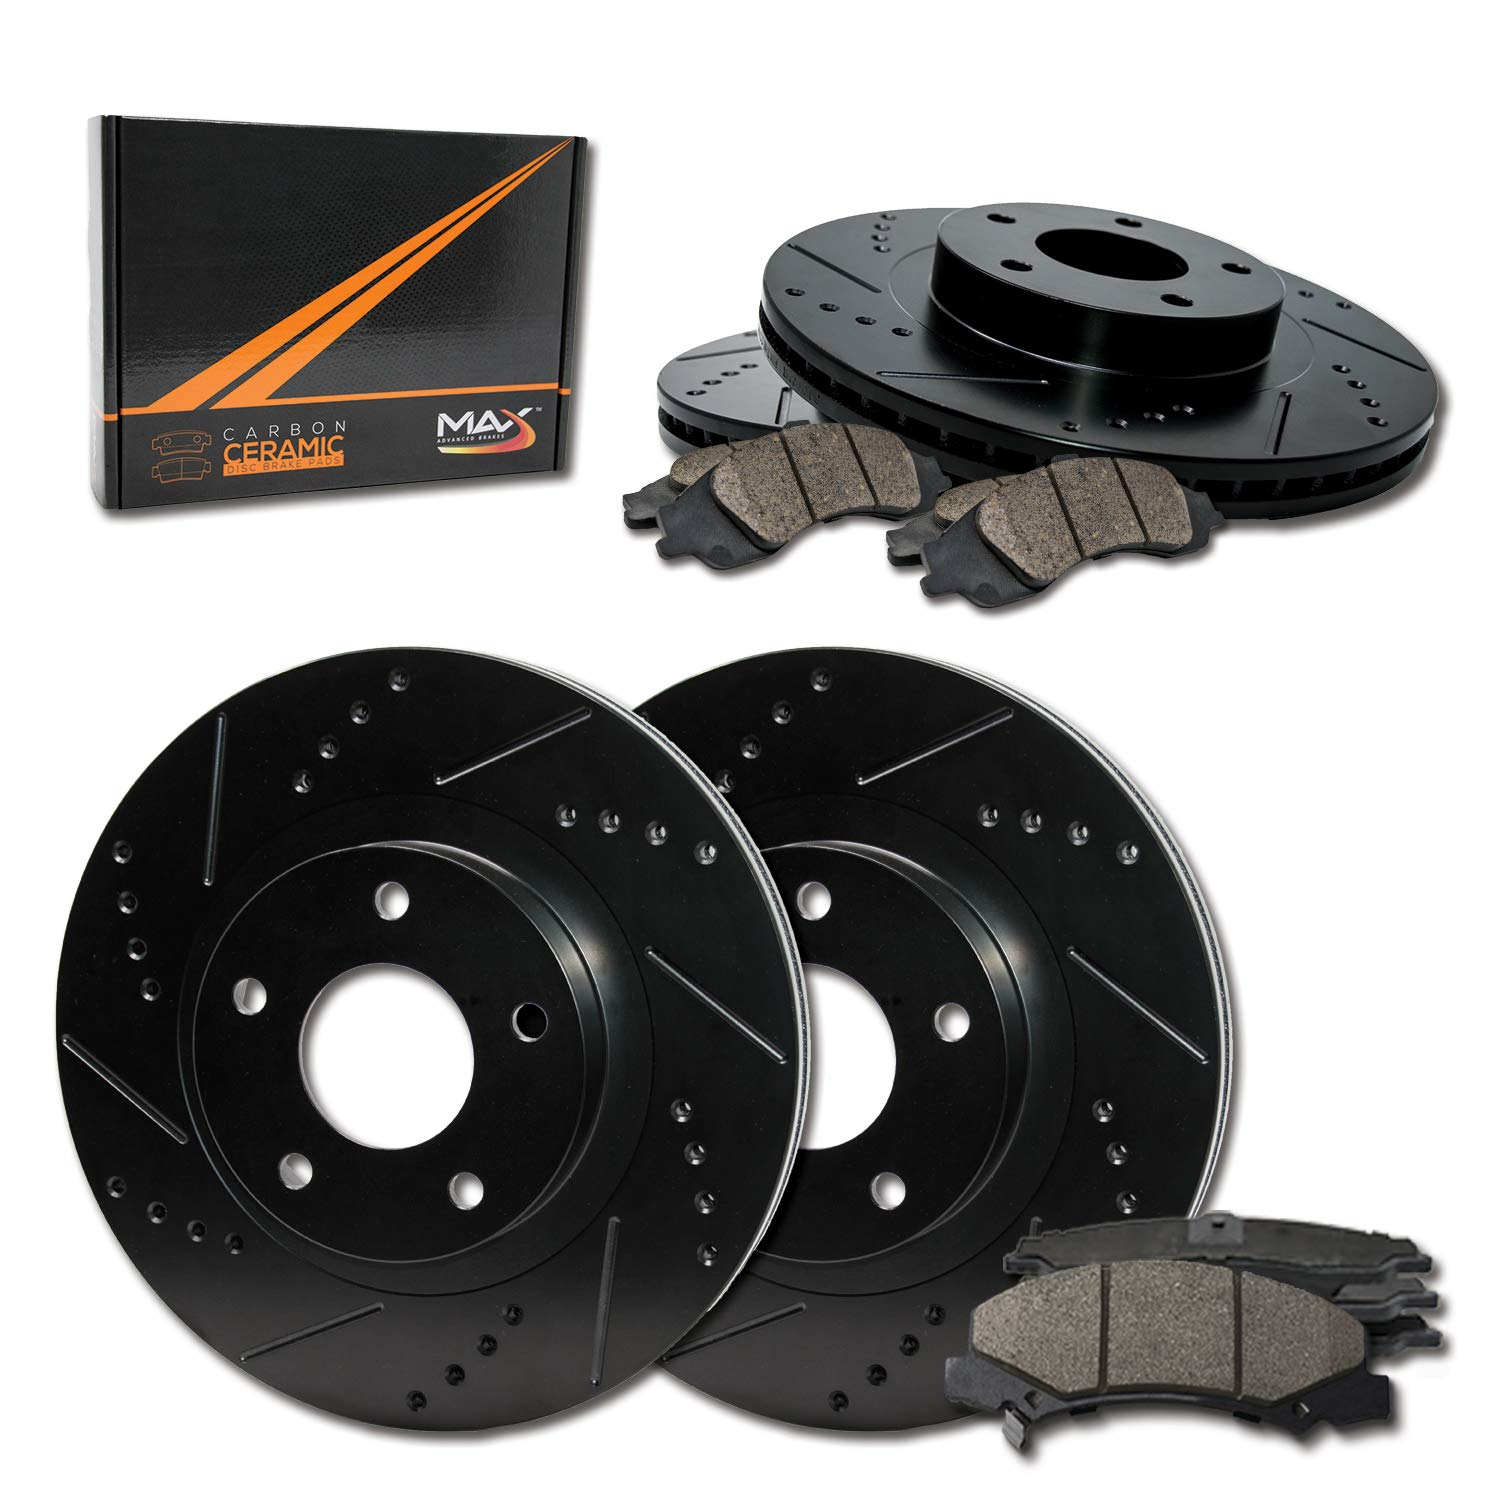 Max Brakes Front & Rear Elite Brake Kit [ E-Coated Slotted Drilled Rotors + Ceramic Pads ] KT079383 Fits: Infiniti 2003 2004 G35 | Nissan 2003-2005 350Z (Non-Brembo) by Max Advanced Brakes